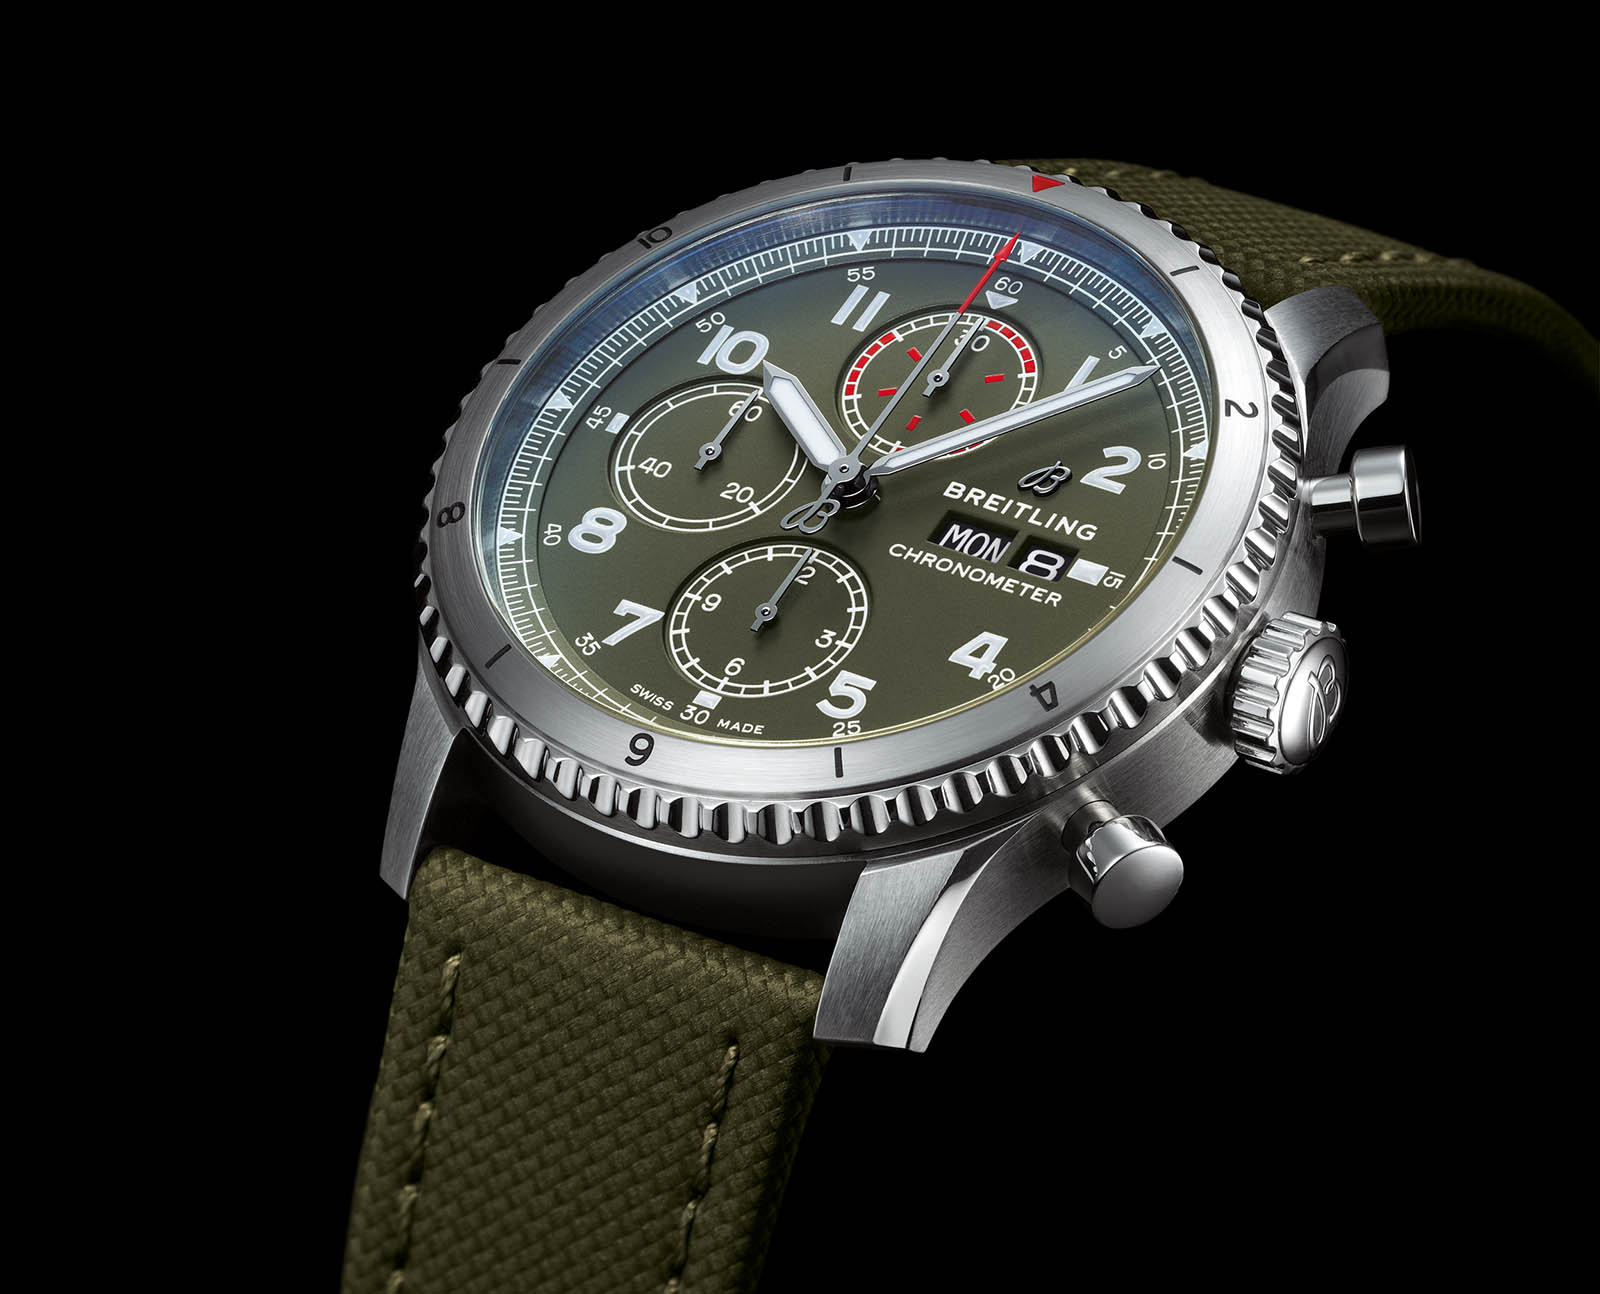 Aviator 8 Chronograph 43 Curtiss Warhawk with military green dial and strap